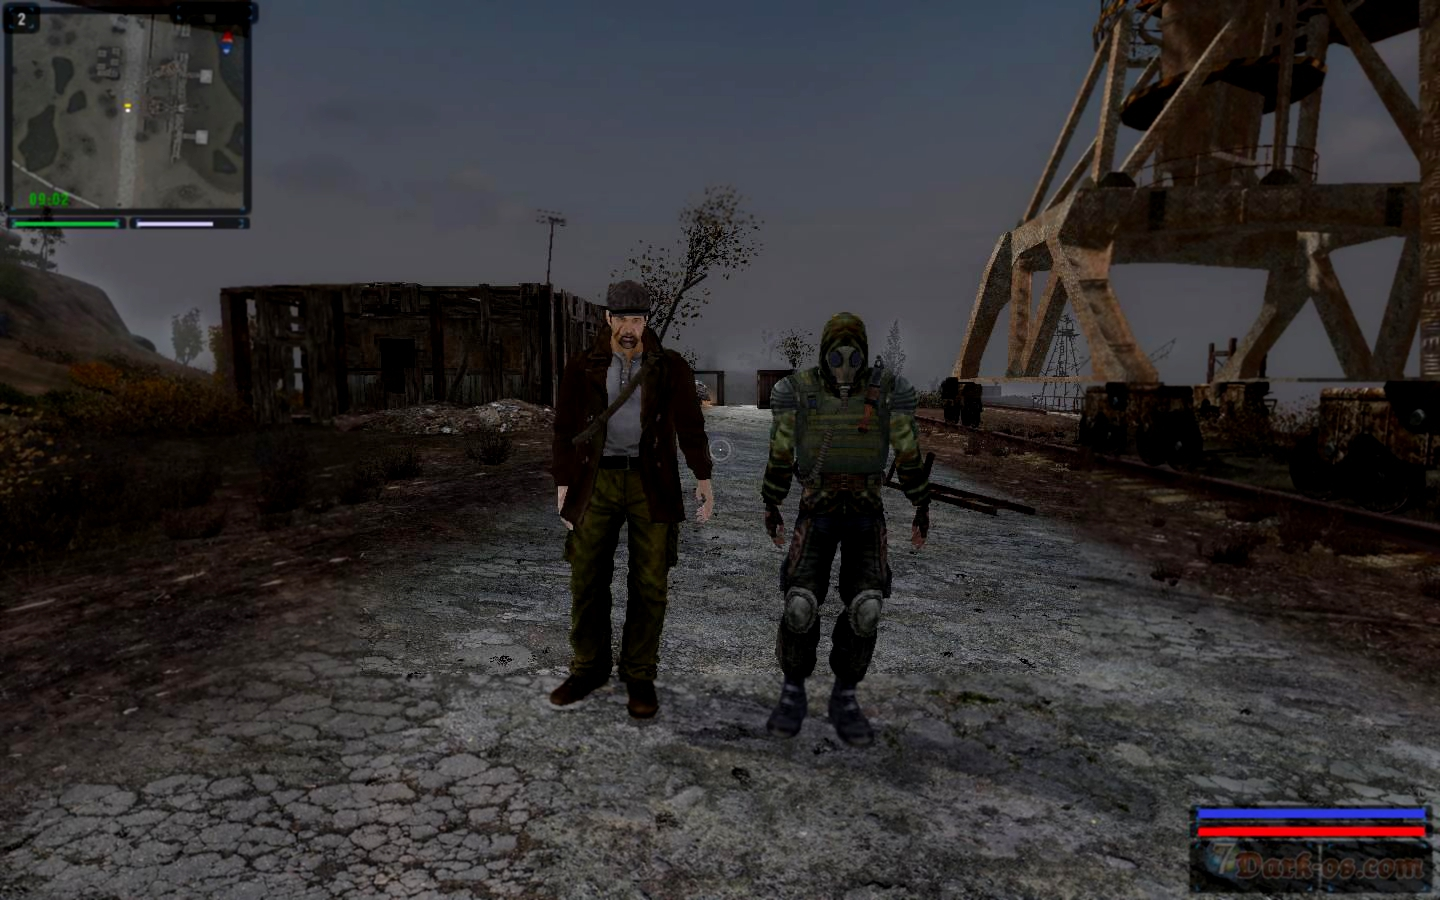 S.T.A.L.K.E.R.: Shadow of Chernobyl - Альтернатива v1.2.1